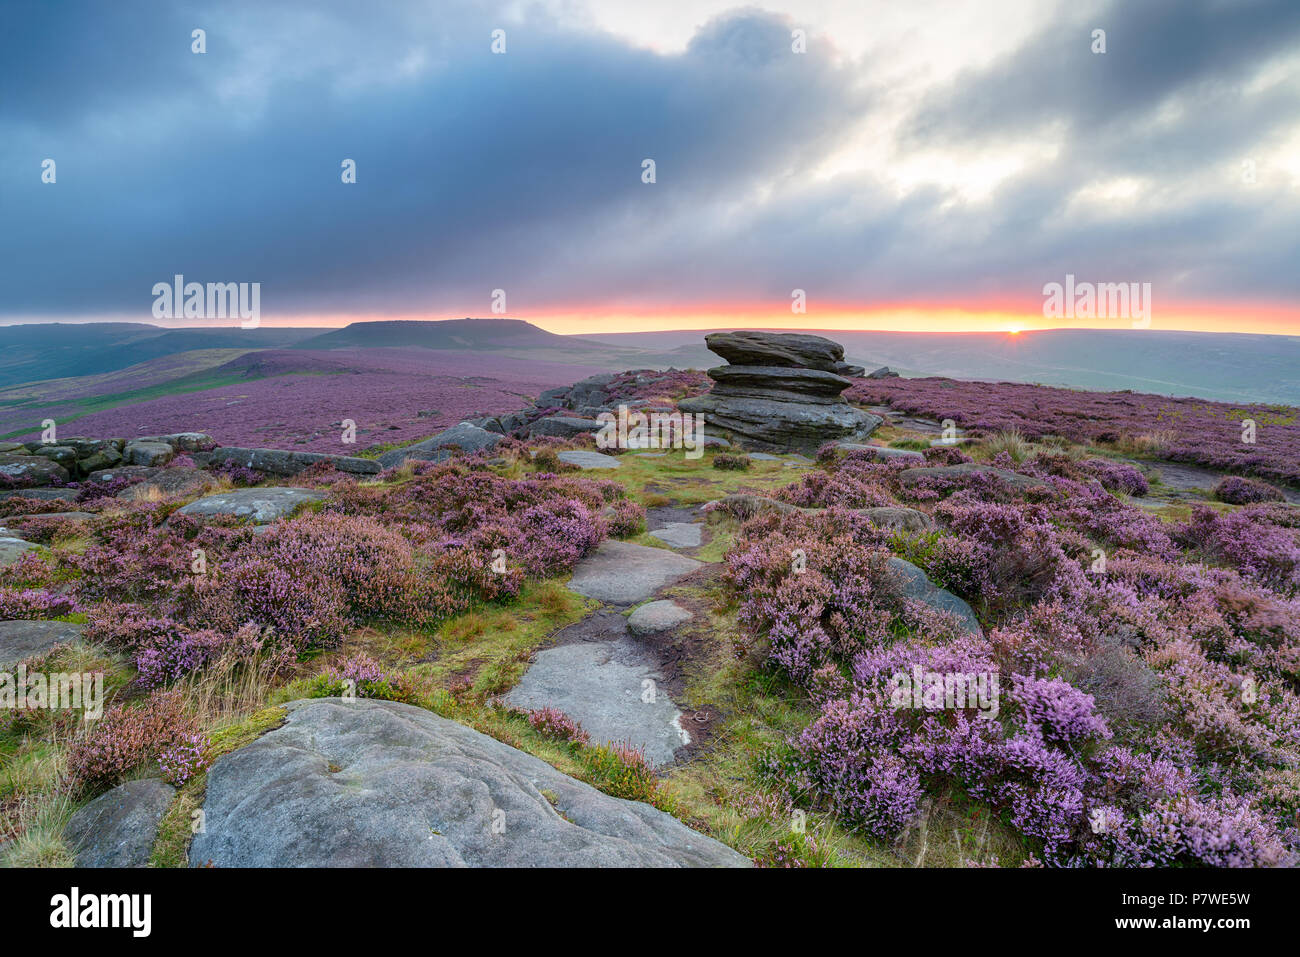 Moody summer sunrise over heather at Over Owler Tor in the Derbyshire Peak District, with the hillfort Carl Wark in the distance - Stock Image